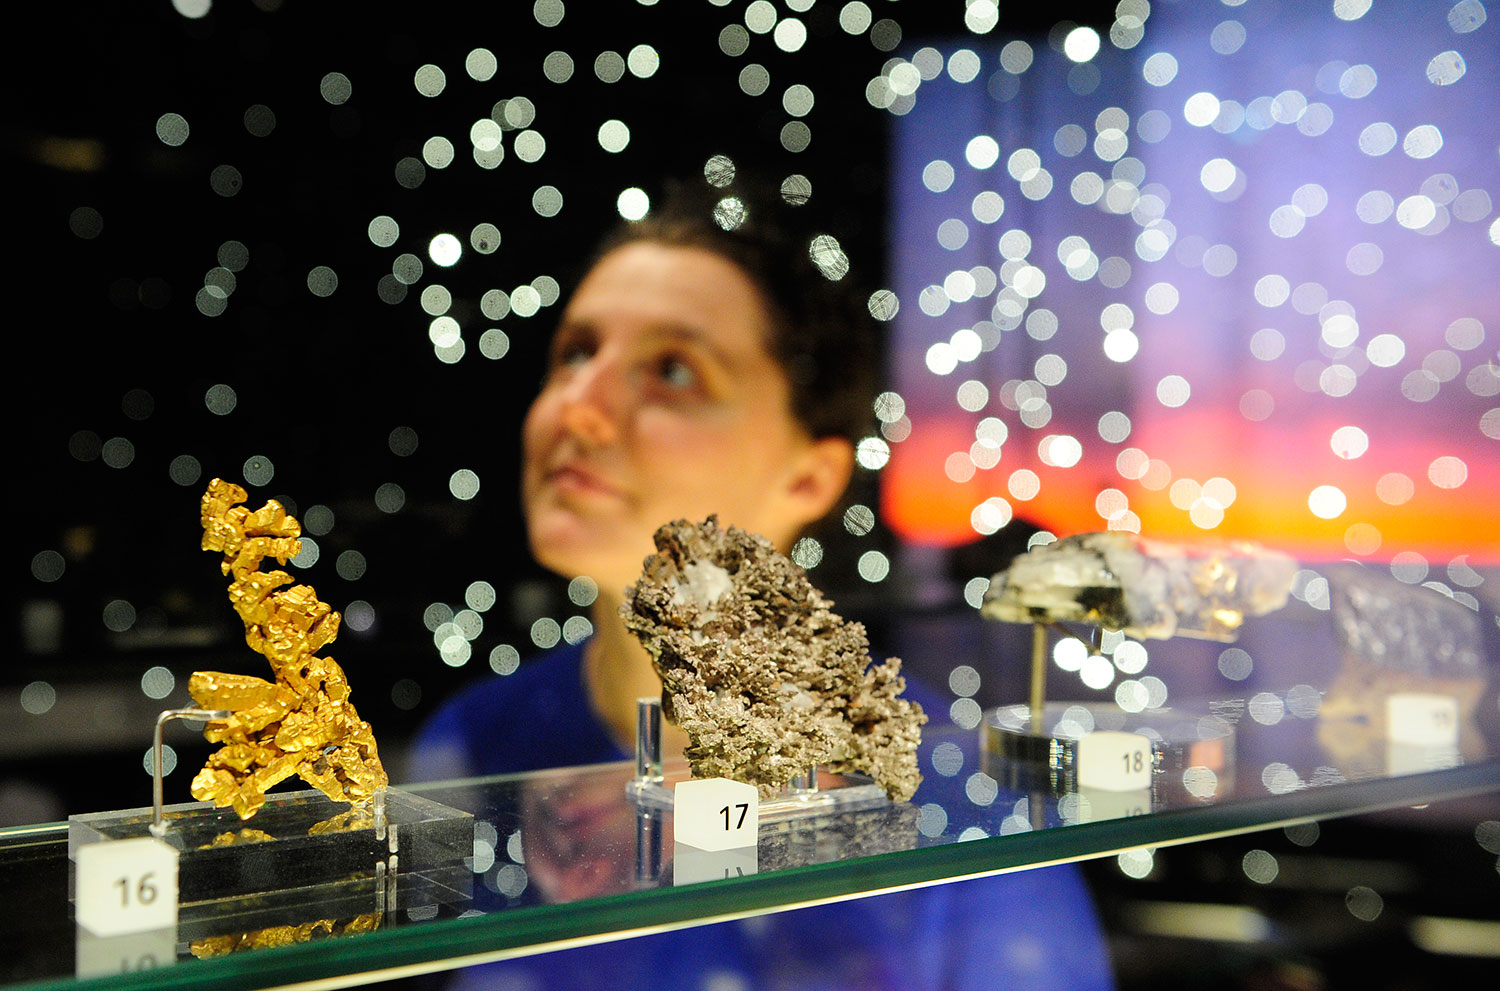 Earth In Space gallery